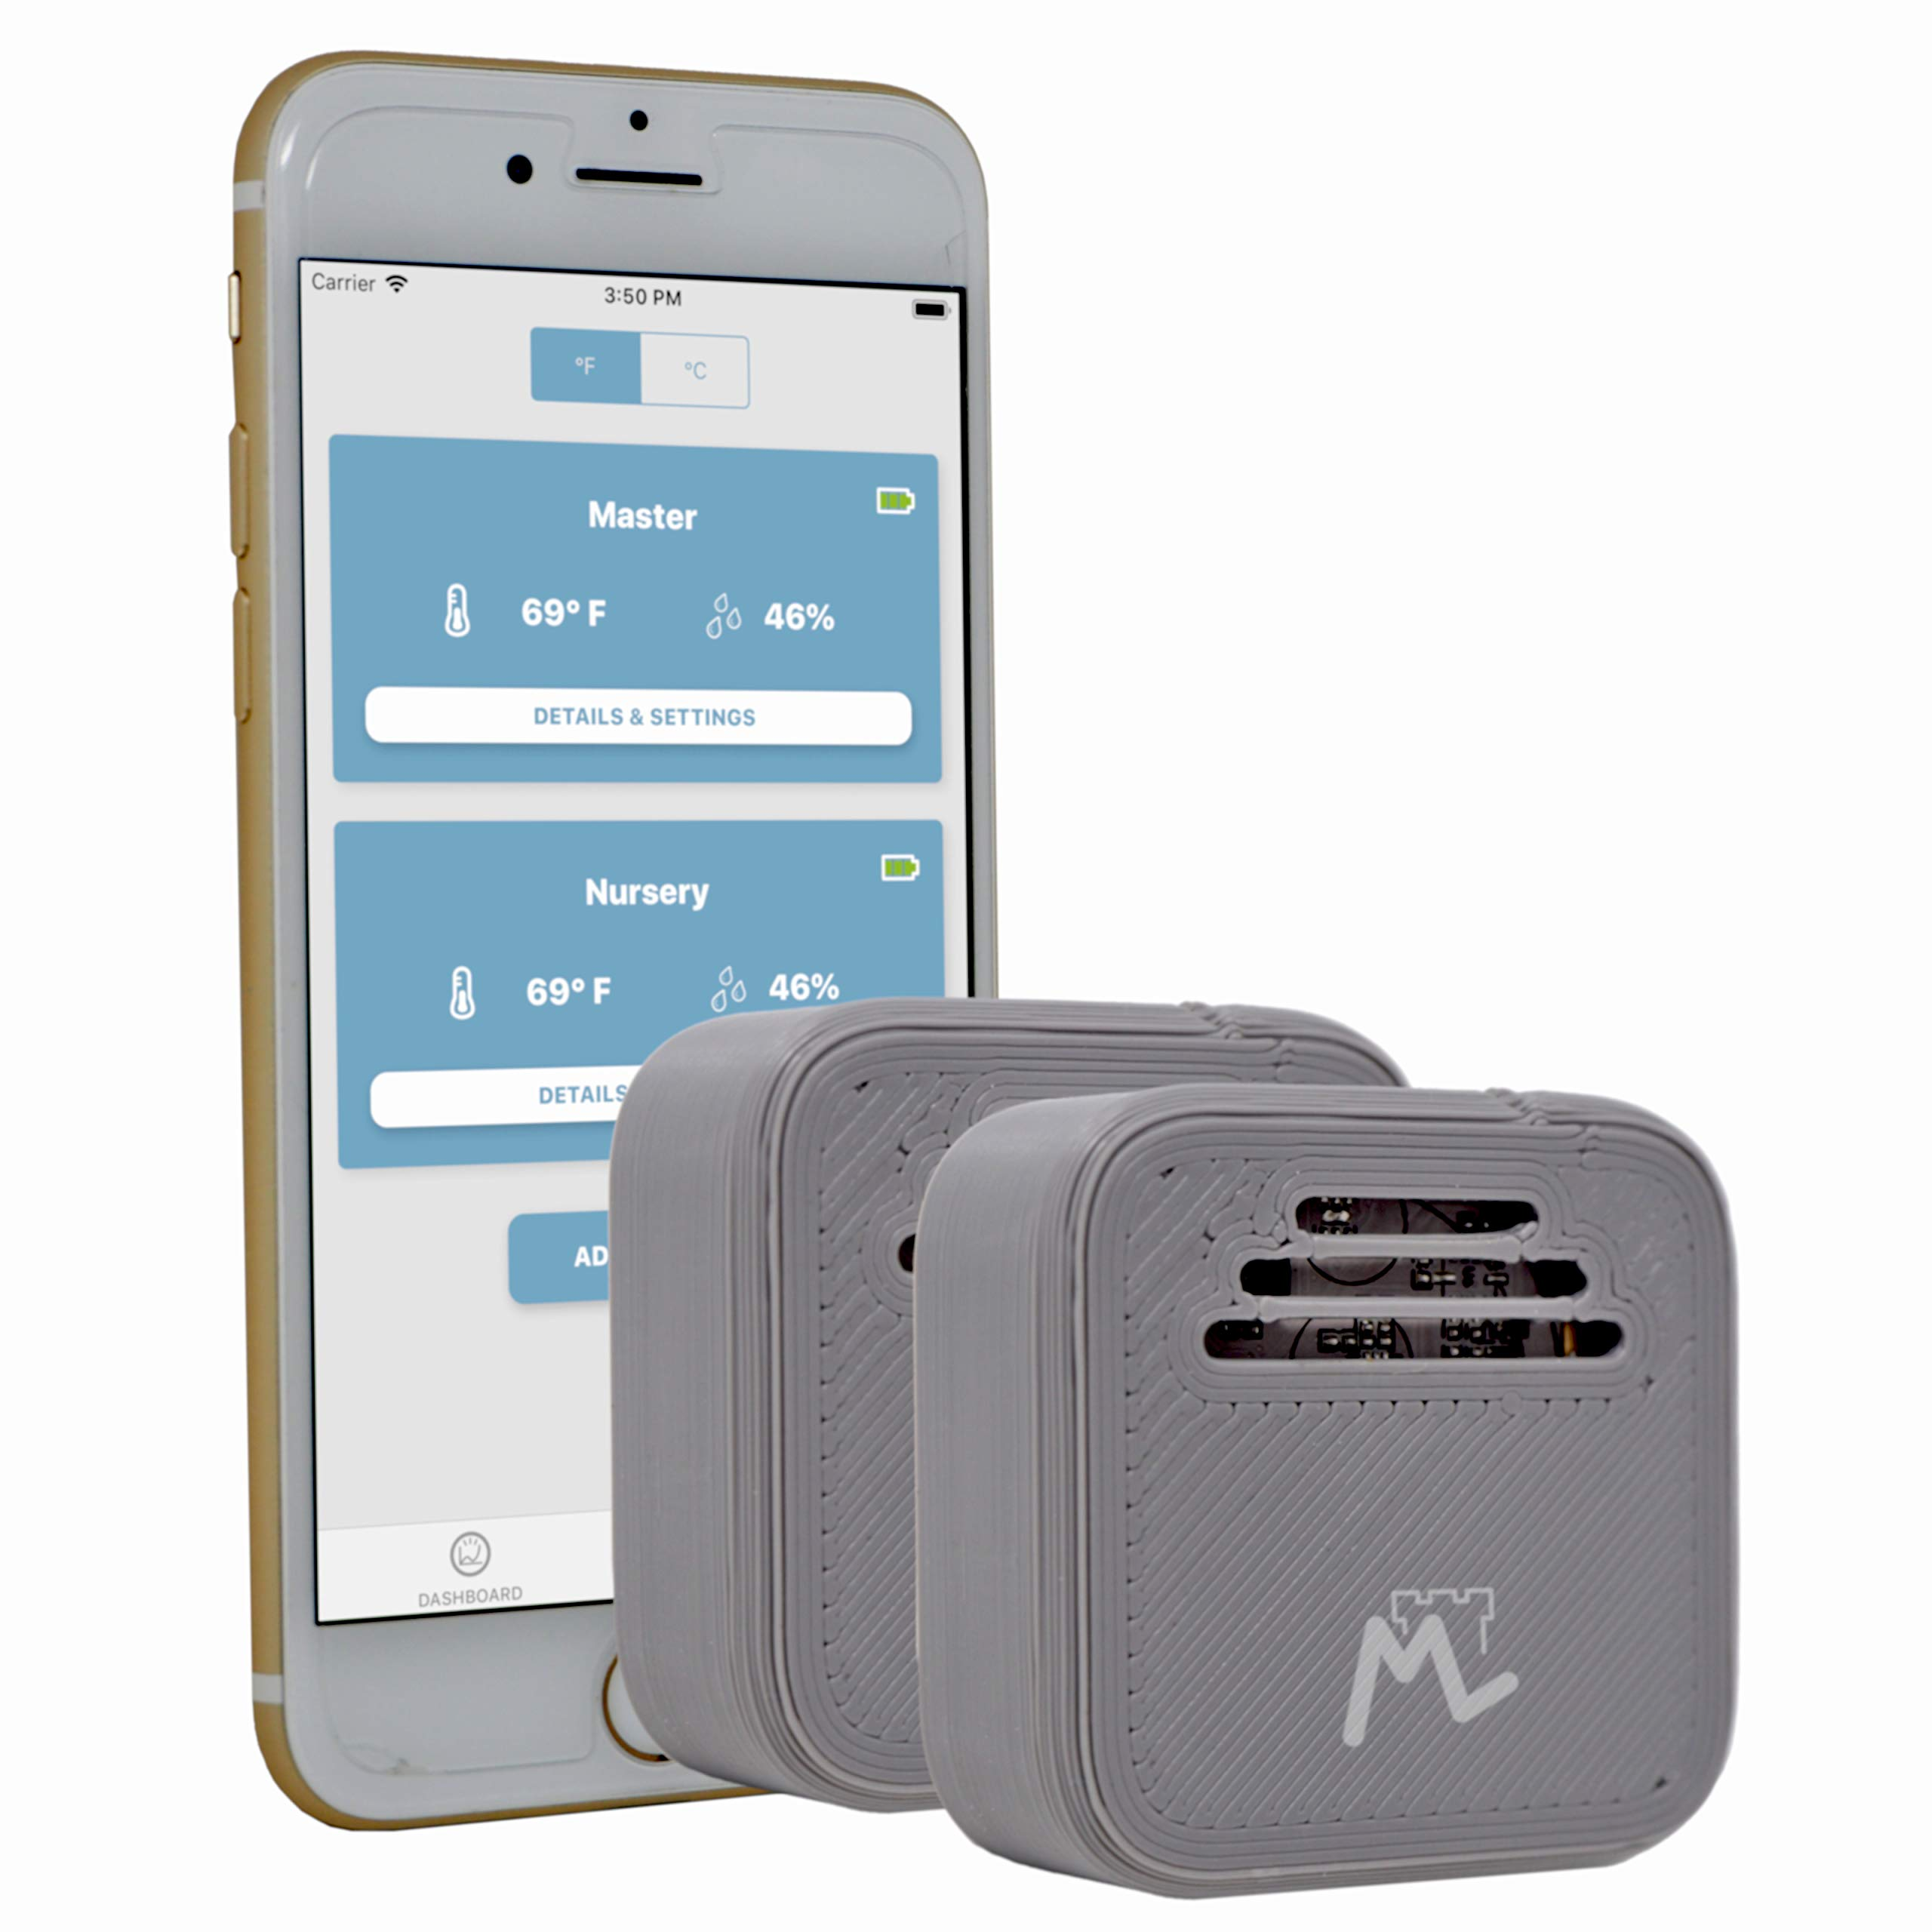 Moat Temperature & Humidity Wireless Smart Sensor for iPhone - iOS Thermometer/Hygrometer with alerts to Monitor The Ambient Climate in Your Nursery, Incubator, Fridge, and Any Other Room (2 Sensors) by Moat (Image #1)